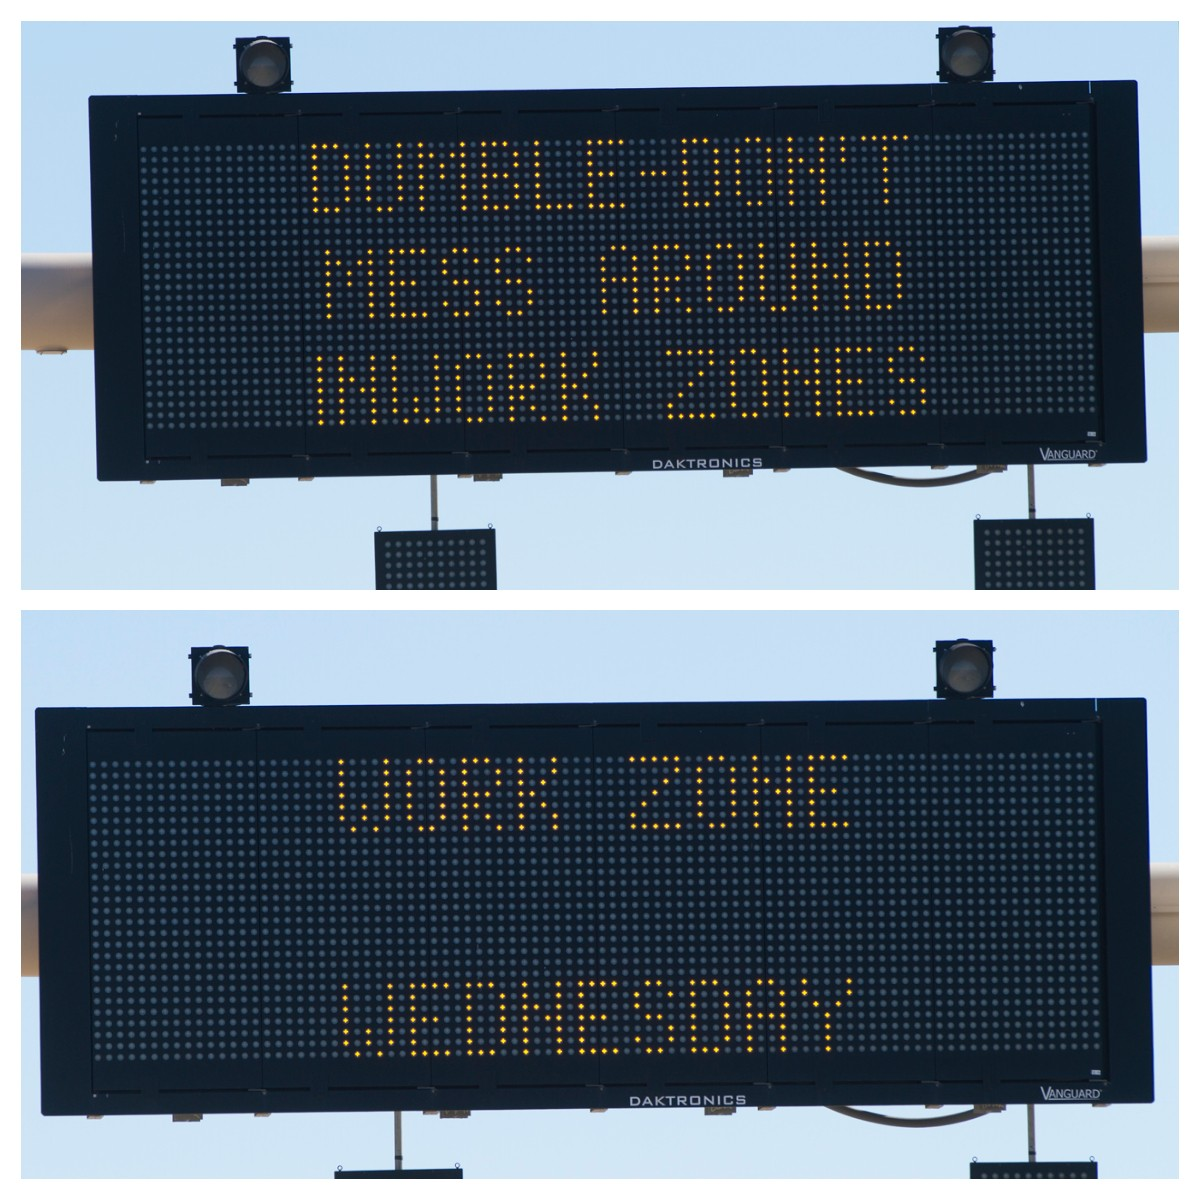 /content/dam/ok/en/odot/images/message-signs/11.16.16.jpg